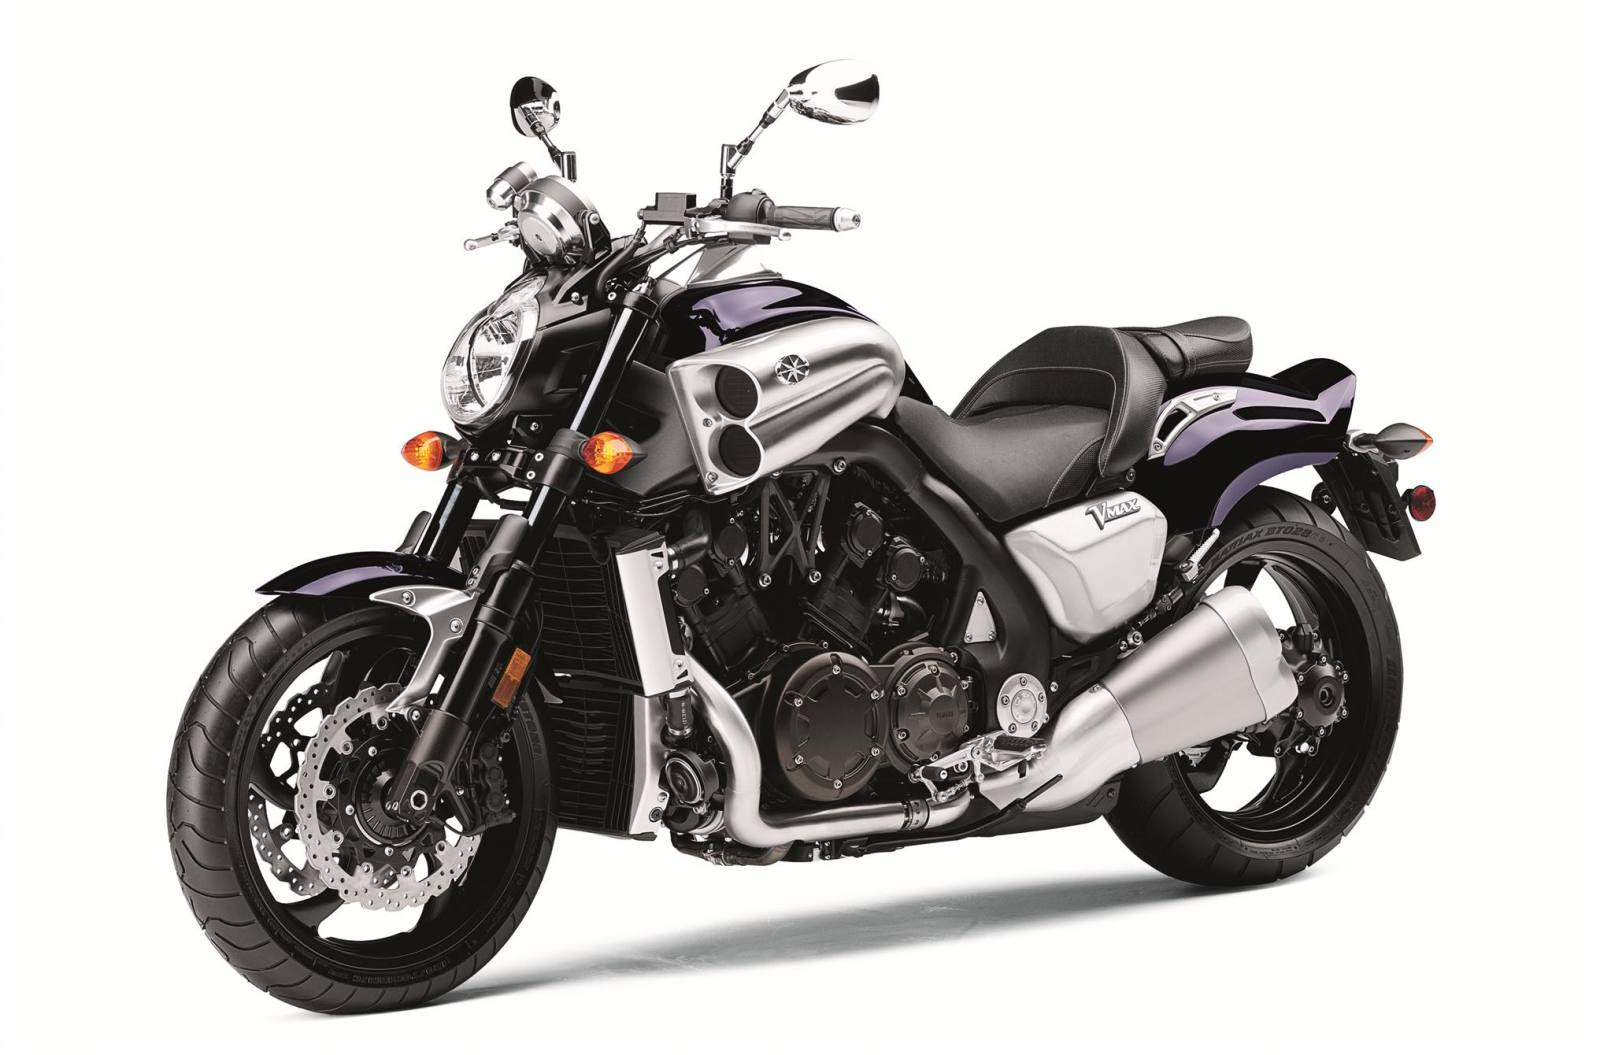 2013 Yamaha Vmax For Sale In Fairbanks Ak Northern Power Sports Ignition Switch Wiring Nebulous Purple